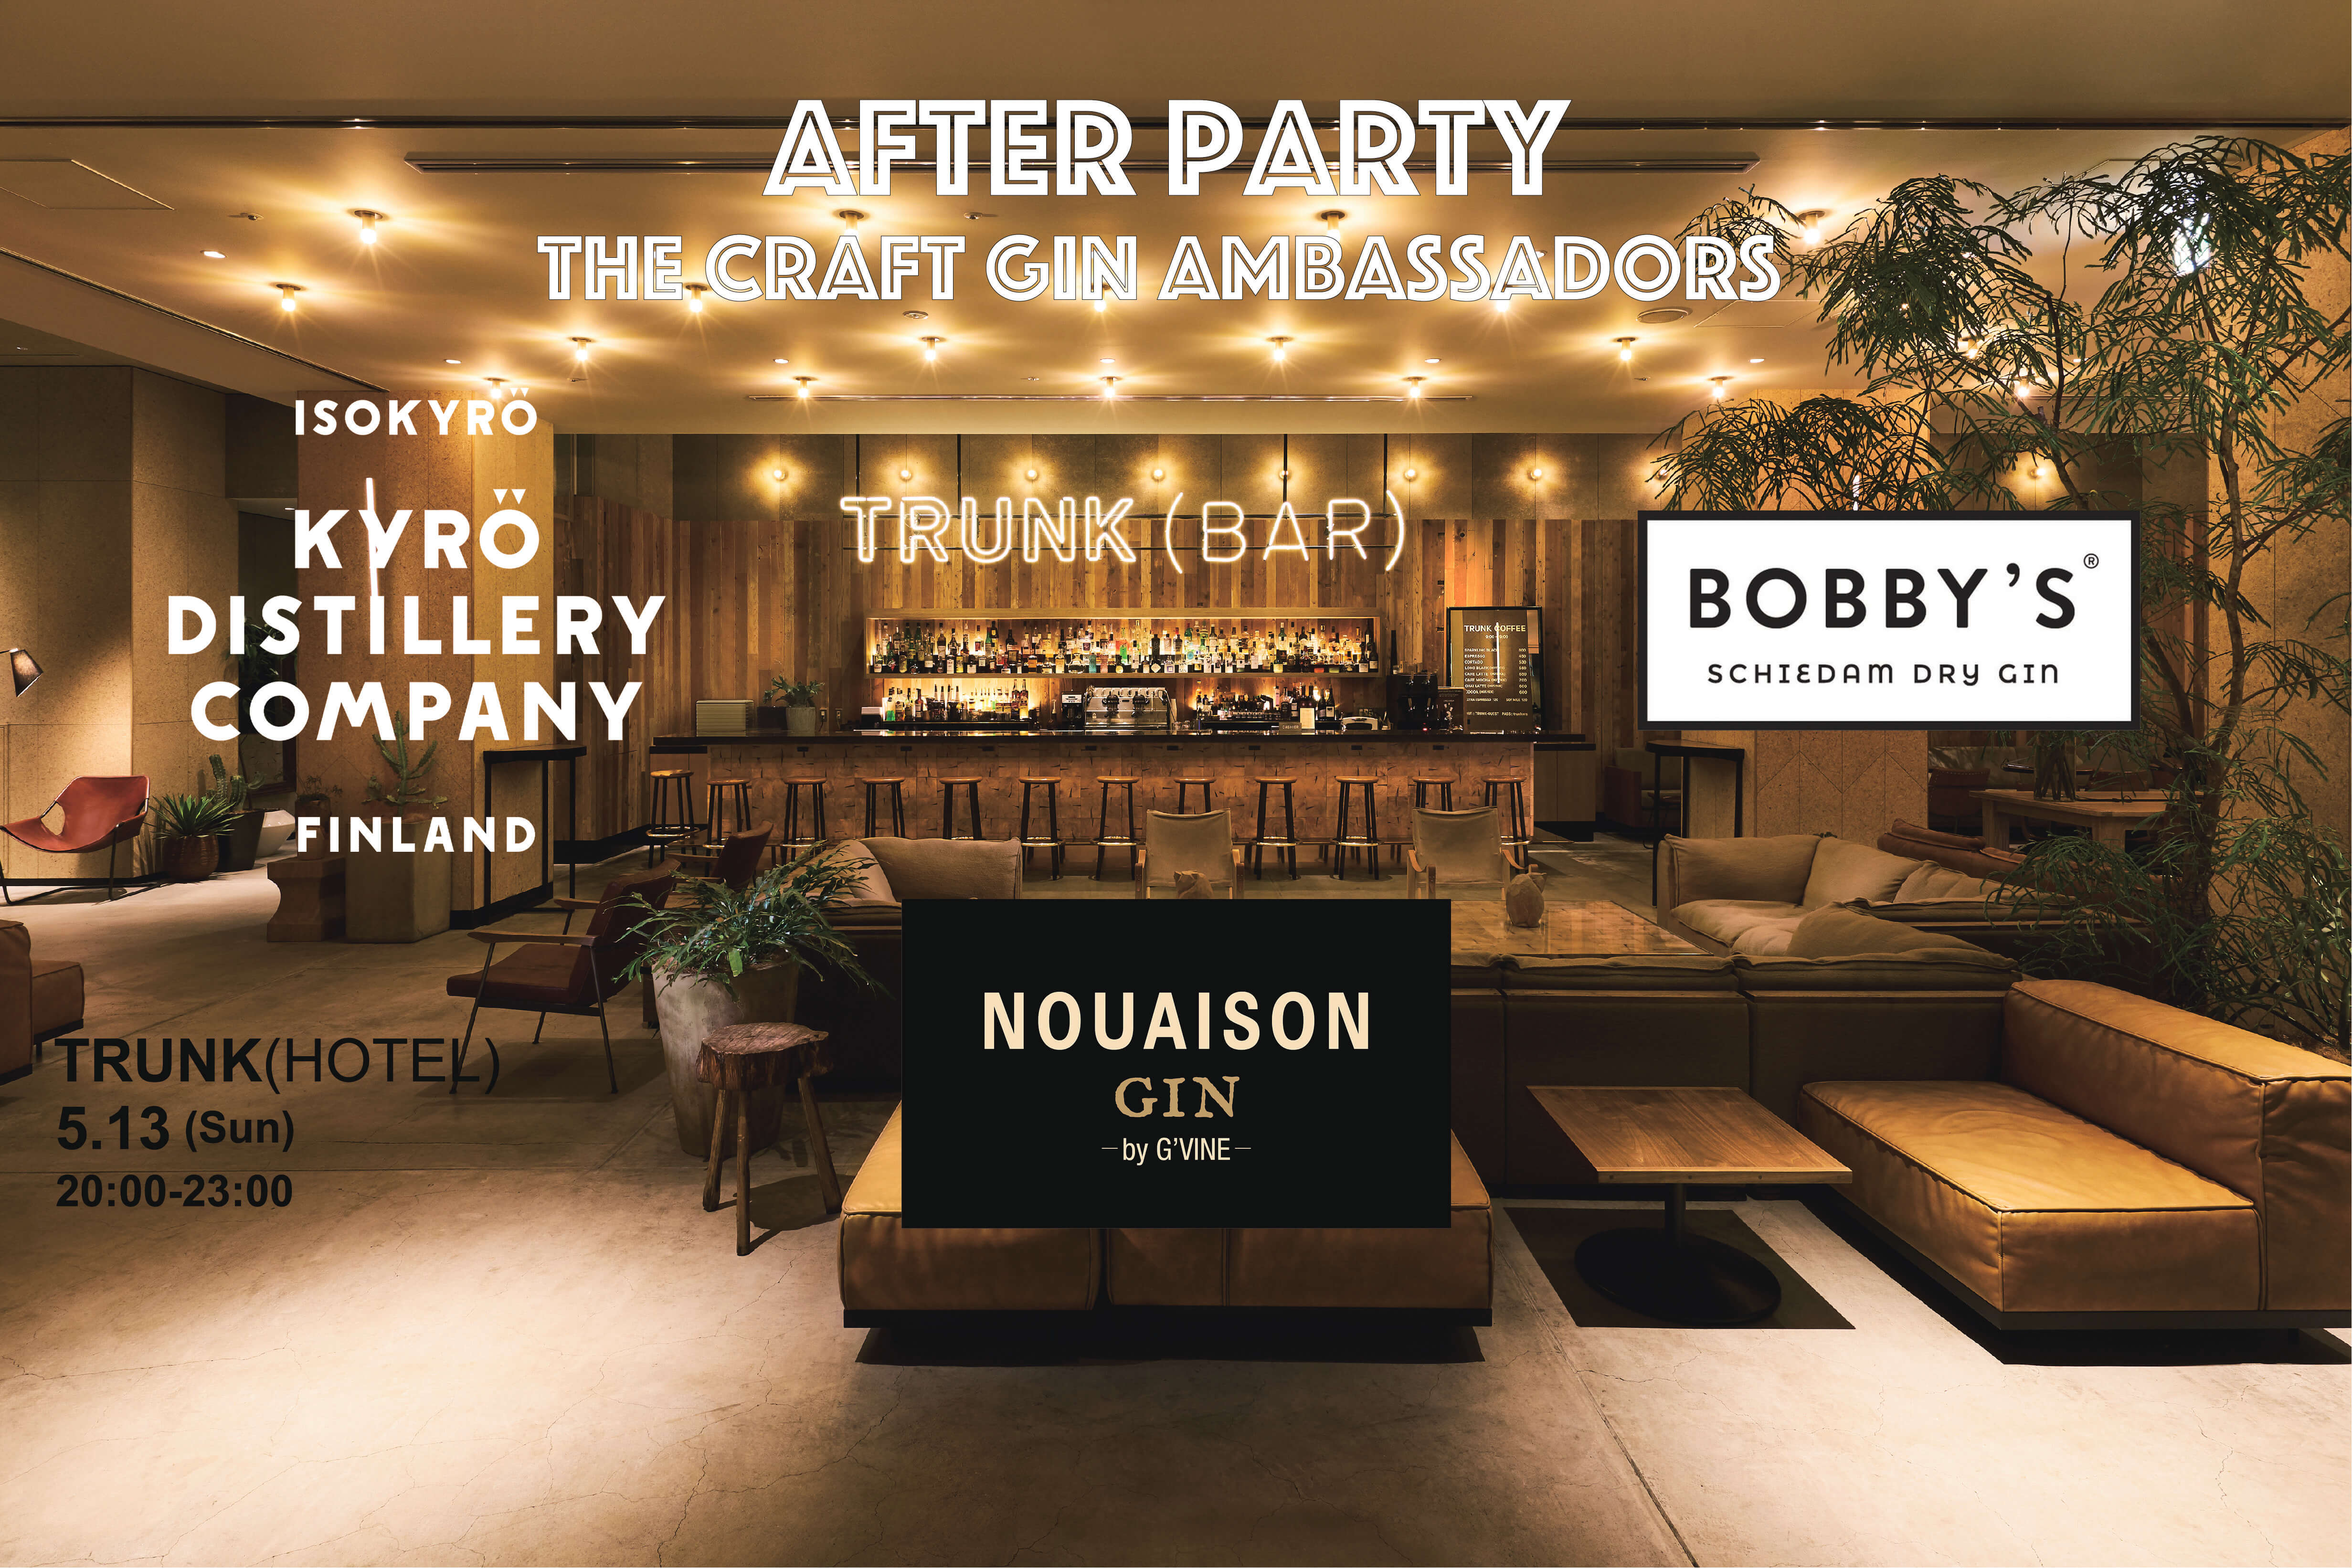 2018.5.13 After Party Craft Gin Ambassadors